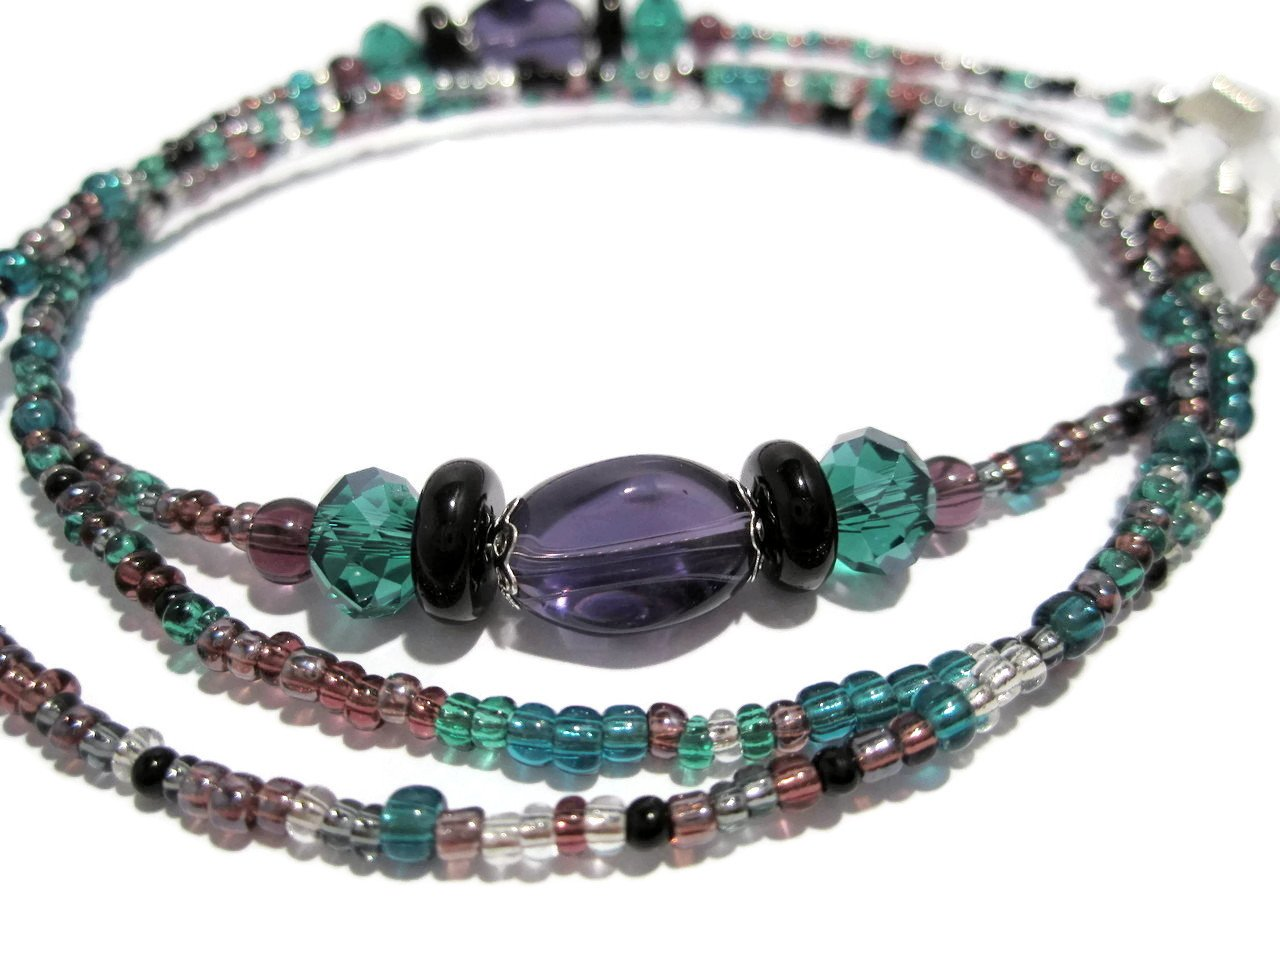 Purple and Teal Mix Beaded Eyeglass Holder - Glasses Chain - Eyeglass Lanyard by ATLanyards